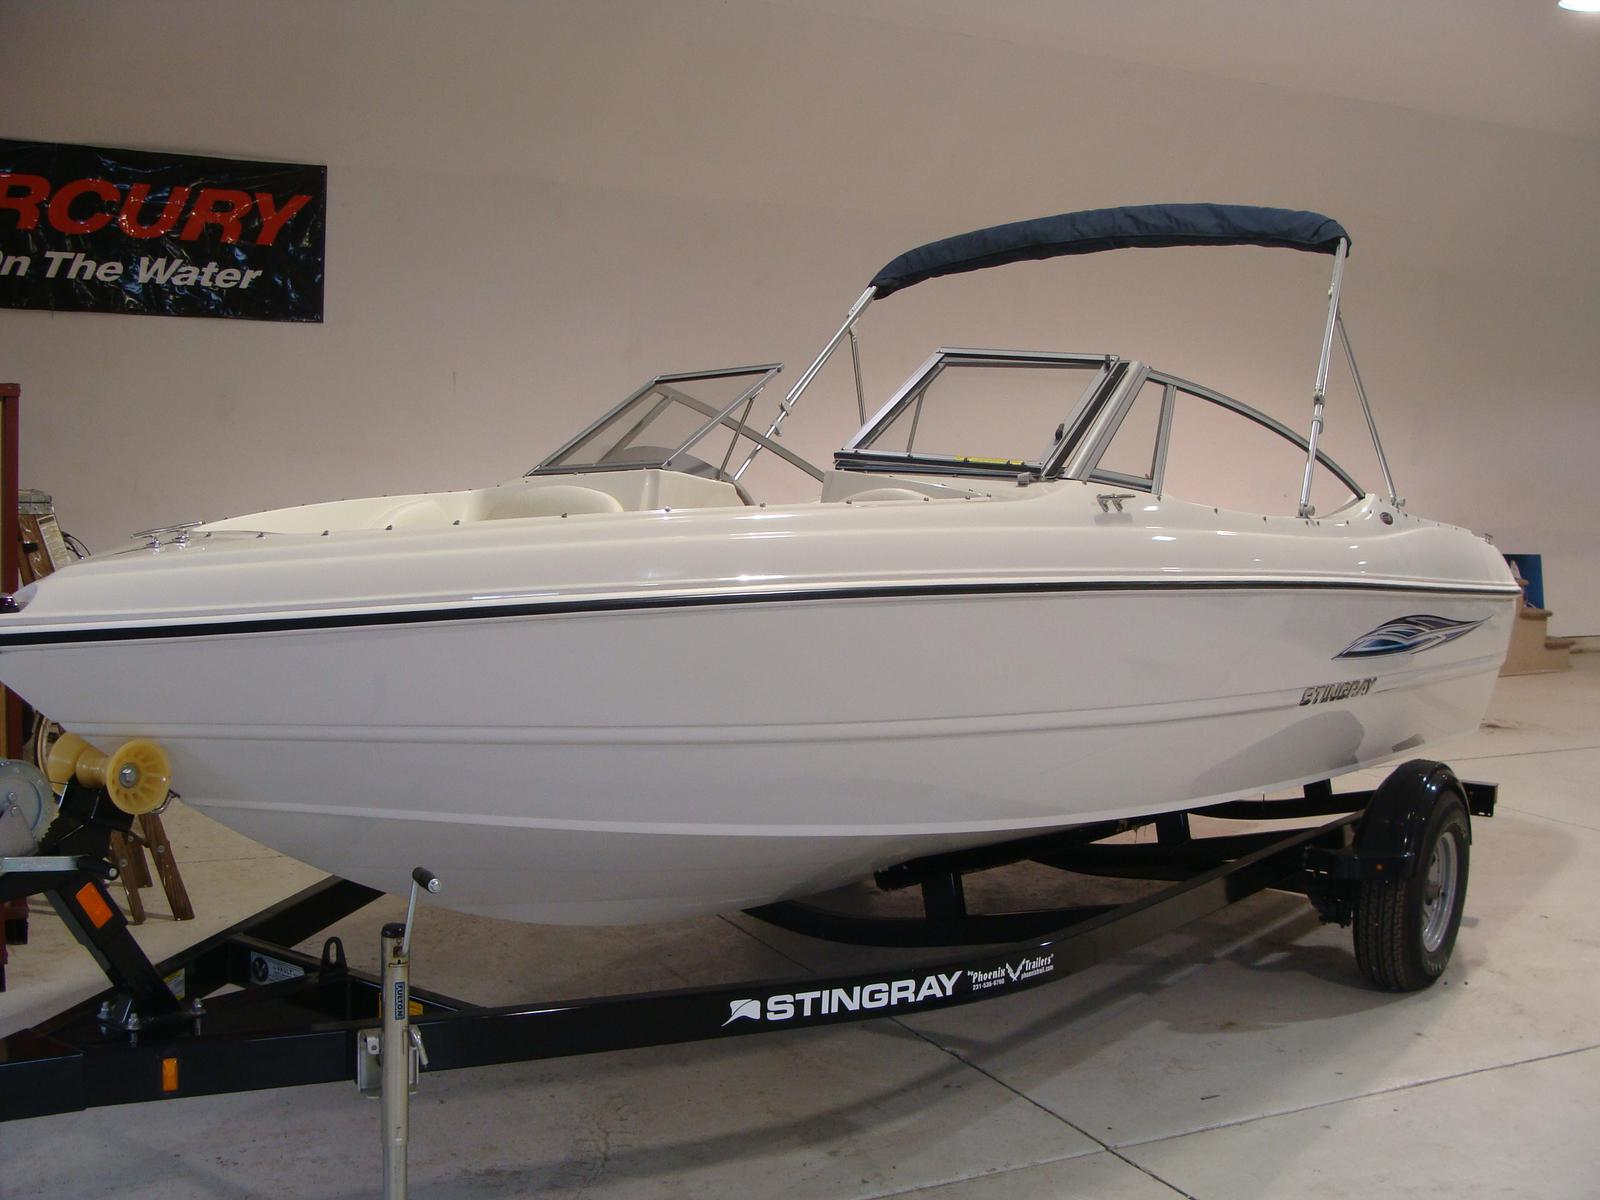 Boats from Regal, Sea Ray, Generation III, Carl Craft and